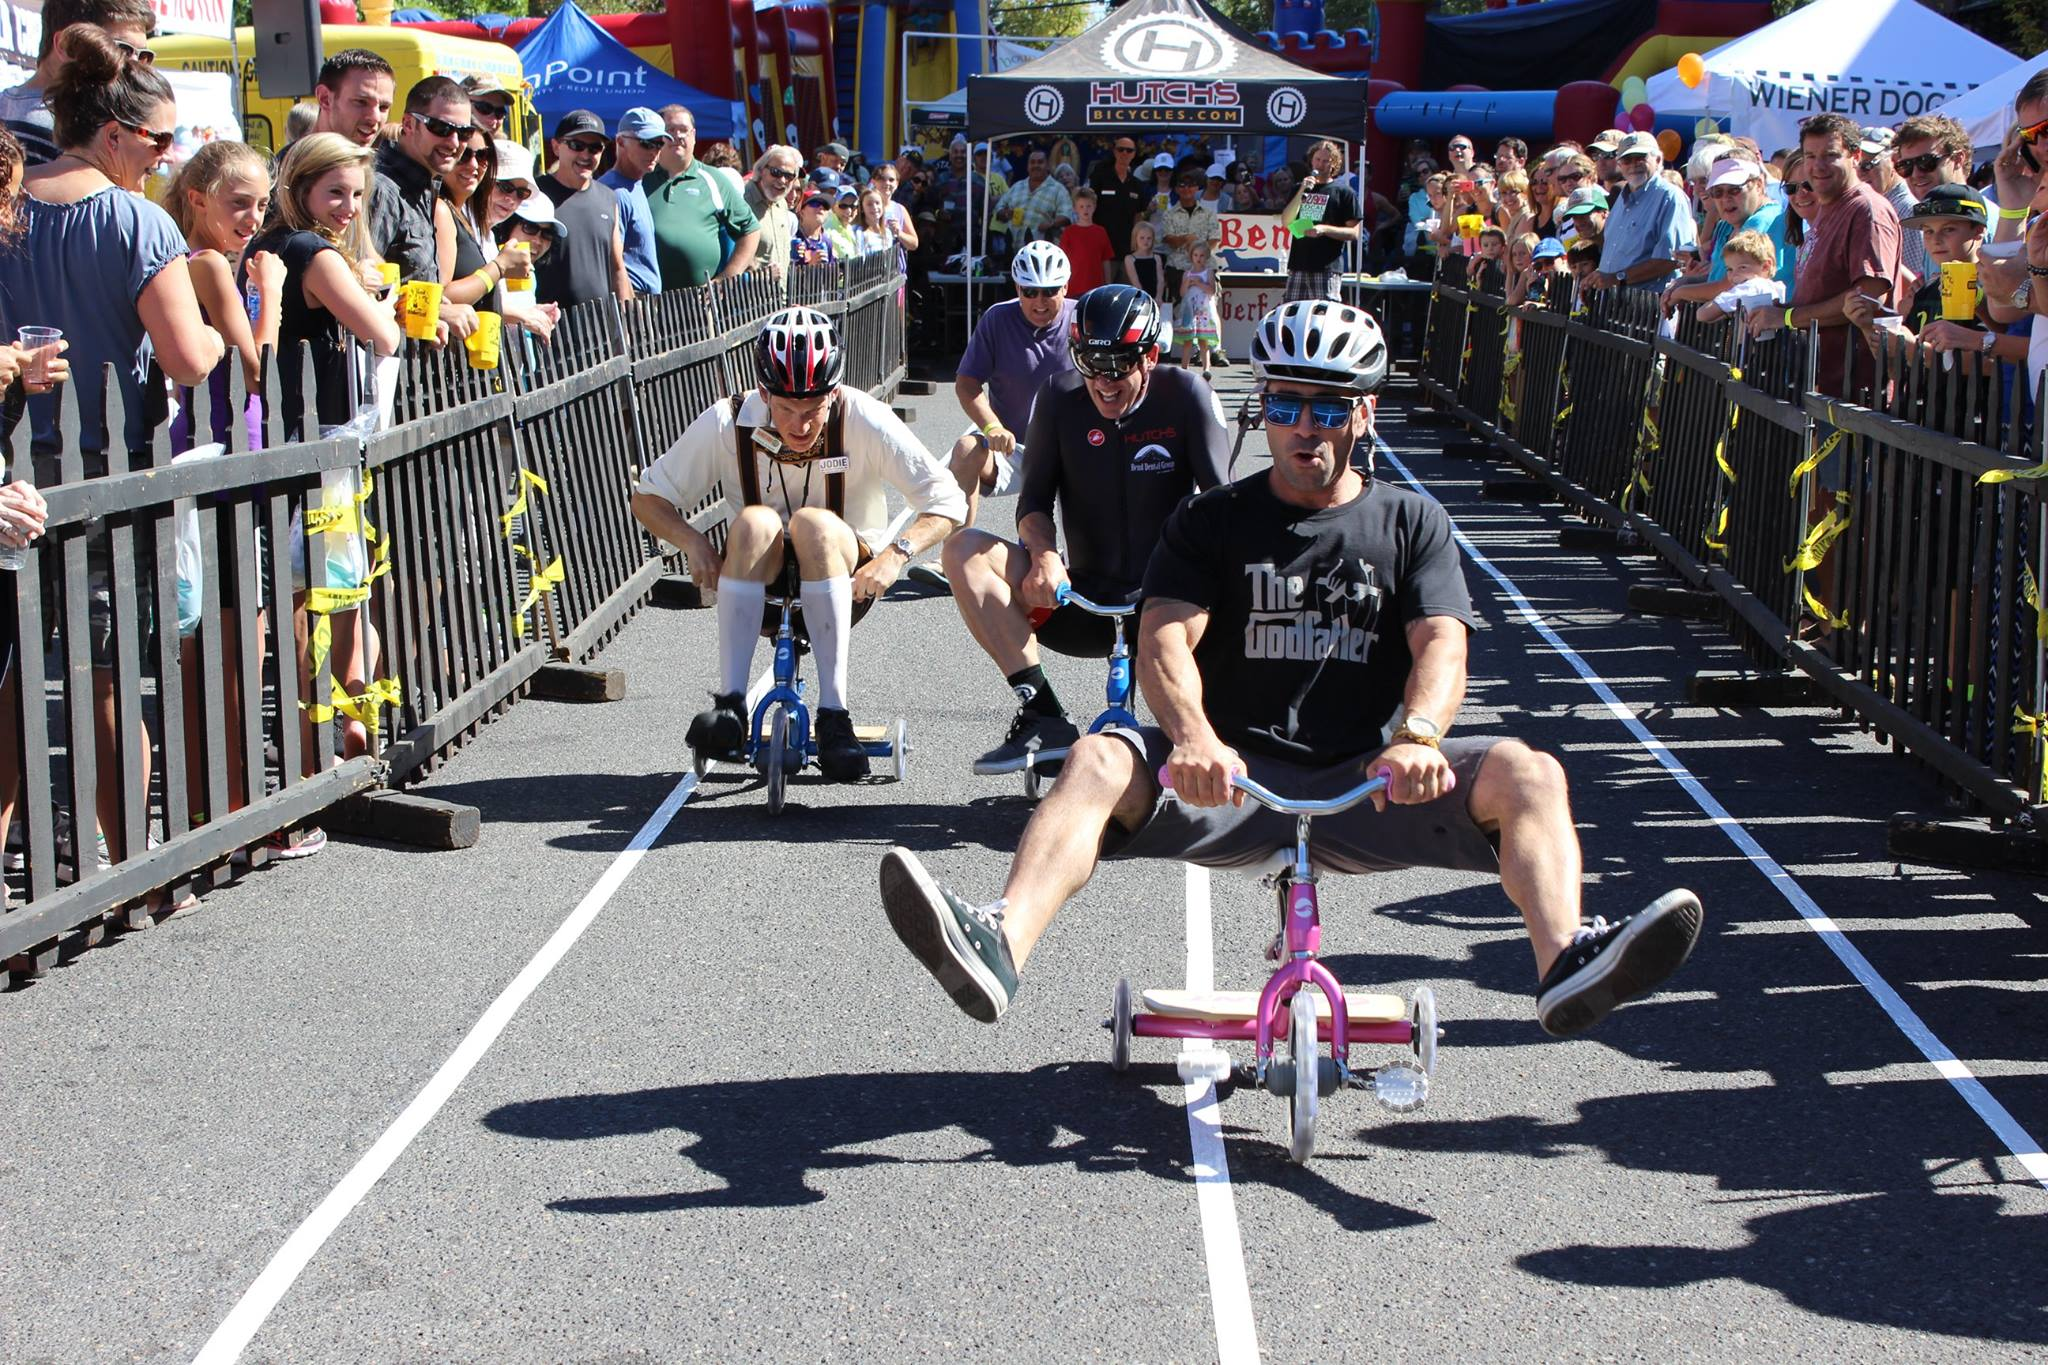 One of many fun scenes you'll likely witness at Oktoberfest in Downtown Bend.